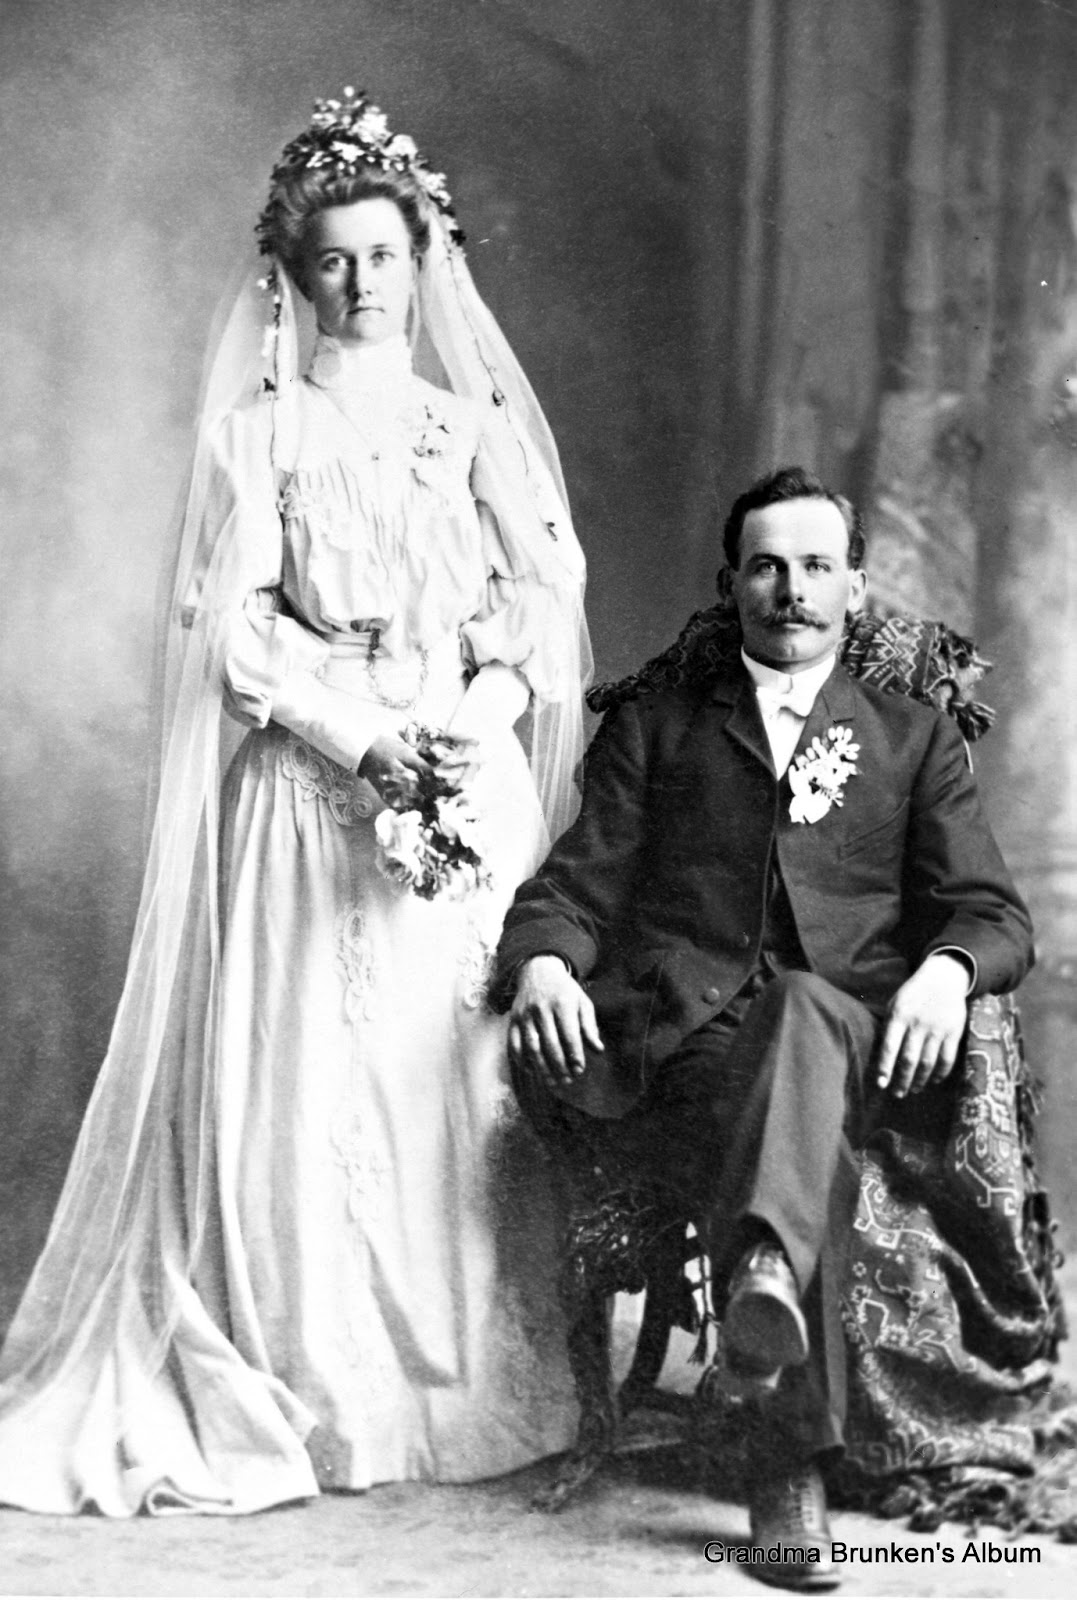 Mary Petersen and William Brunken - 1905